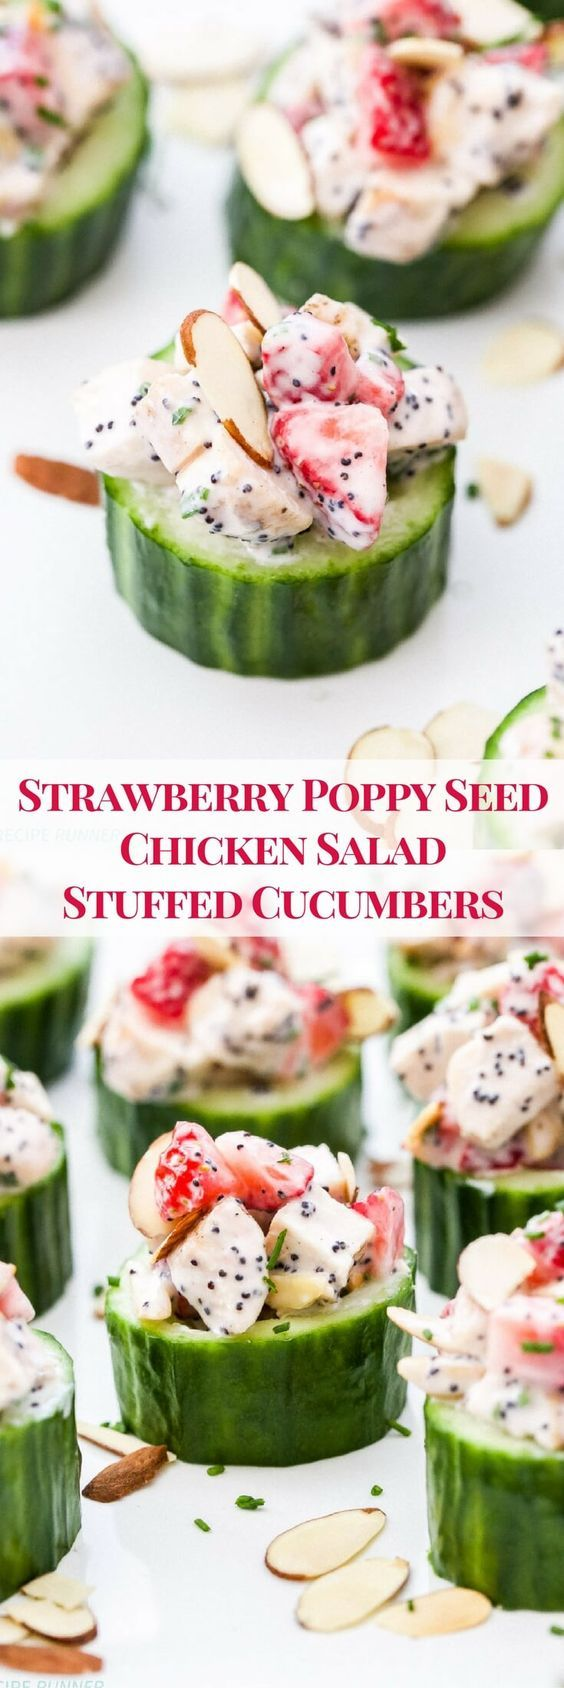 Whether you're looking for a low carb dinner or a fun new way to serve chicken salad at your next party or brunch, you'll love these healthy, creamy, Strawberry Poppy Seed Chicken Salad Stuffed Cucumbers!